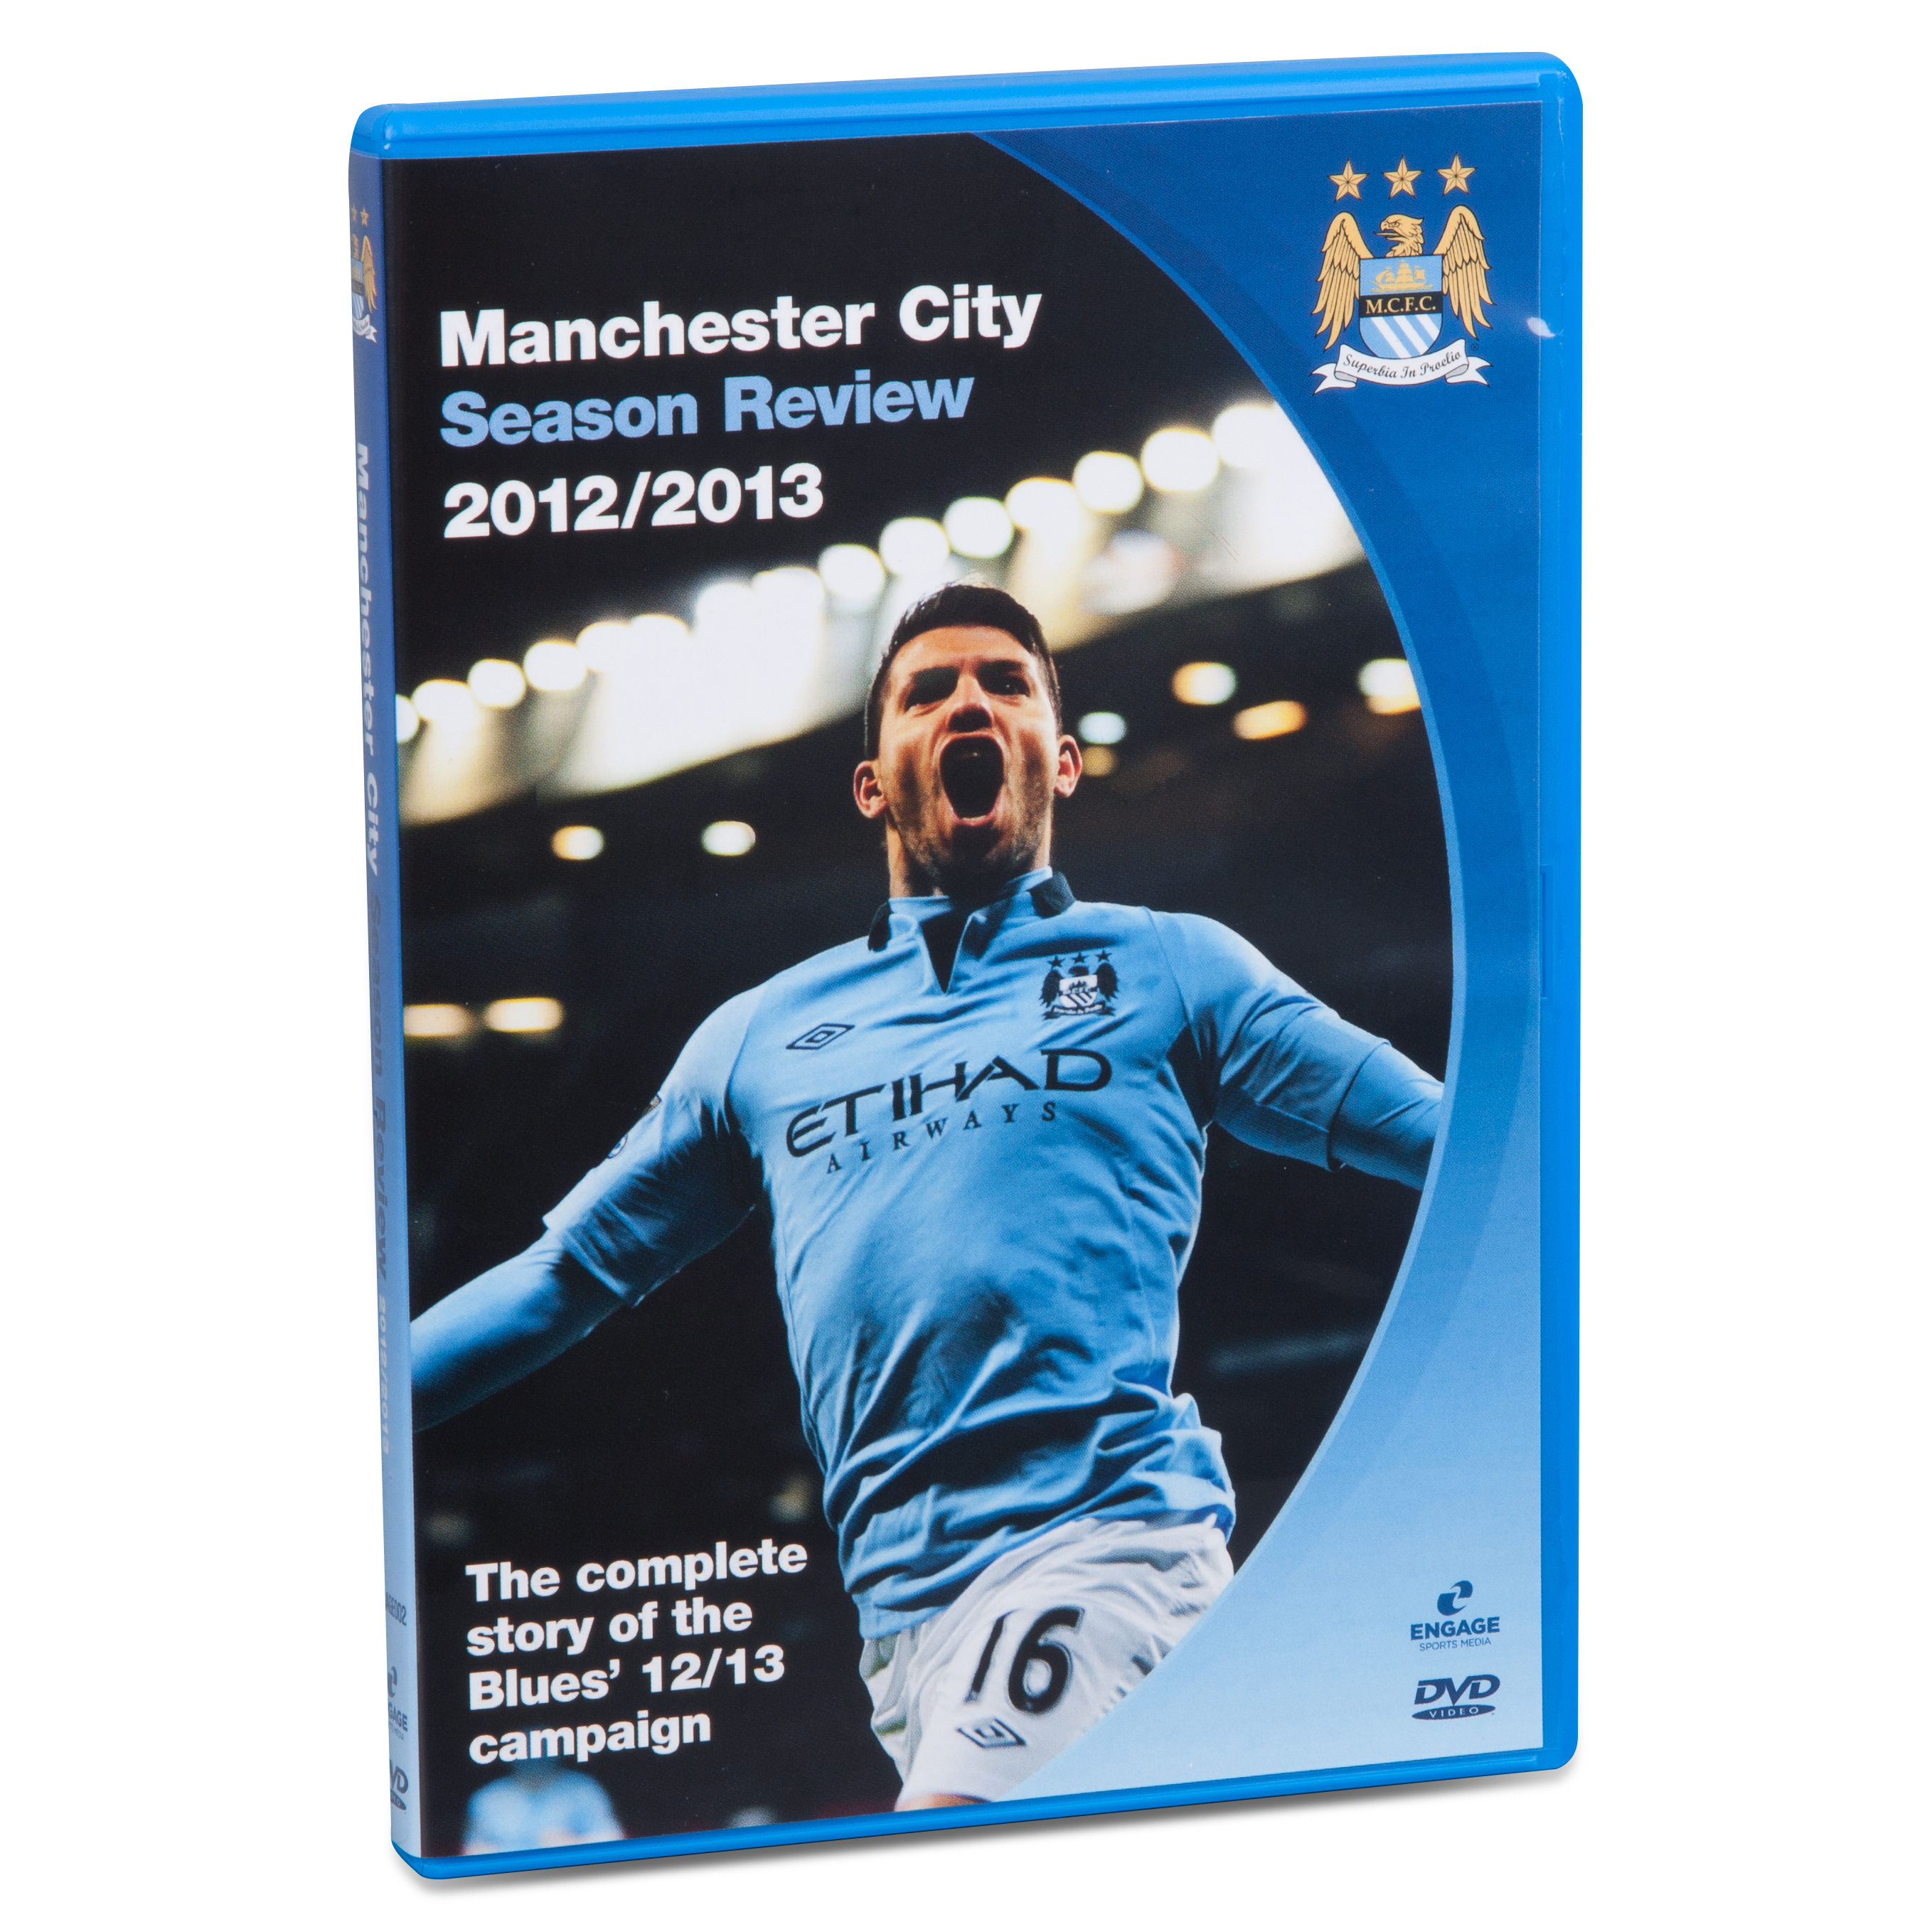 Manchester City Season Review 2012/2013 DVD